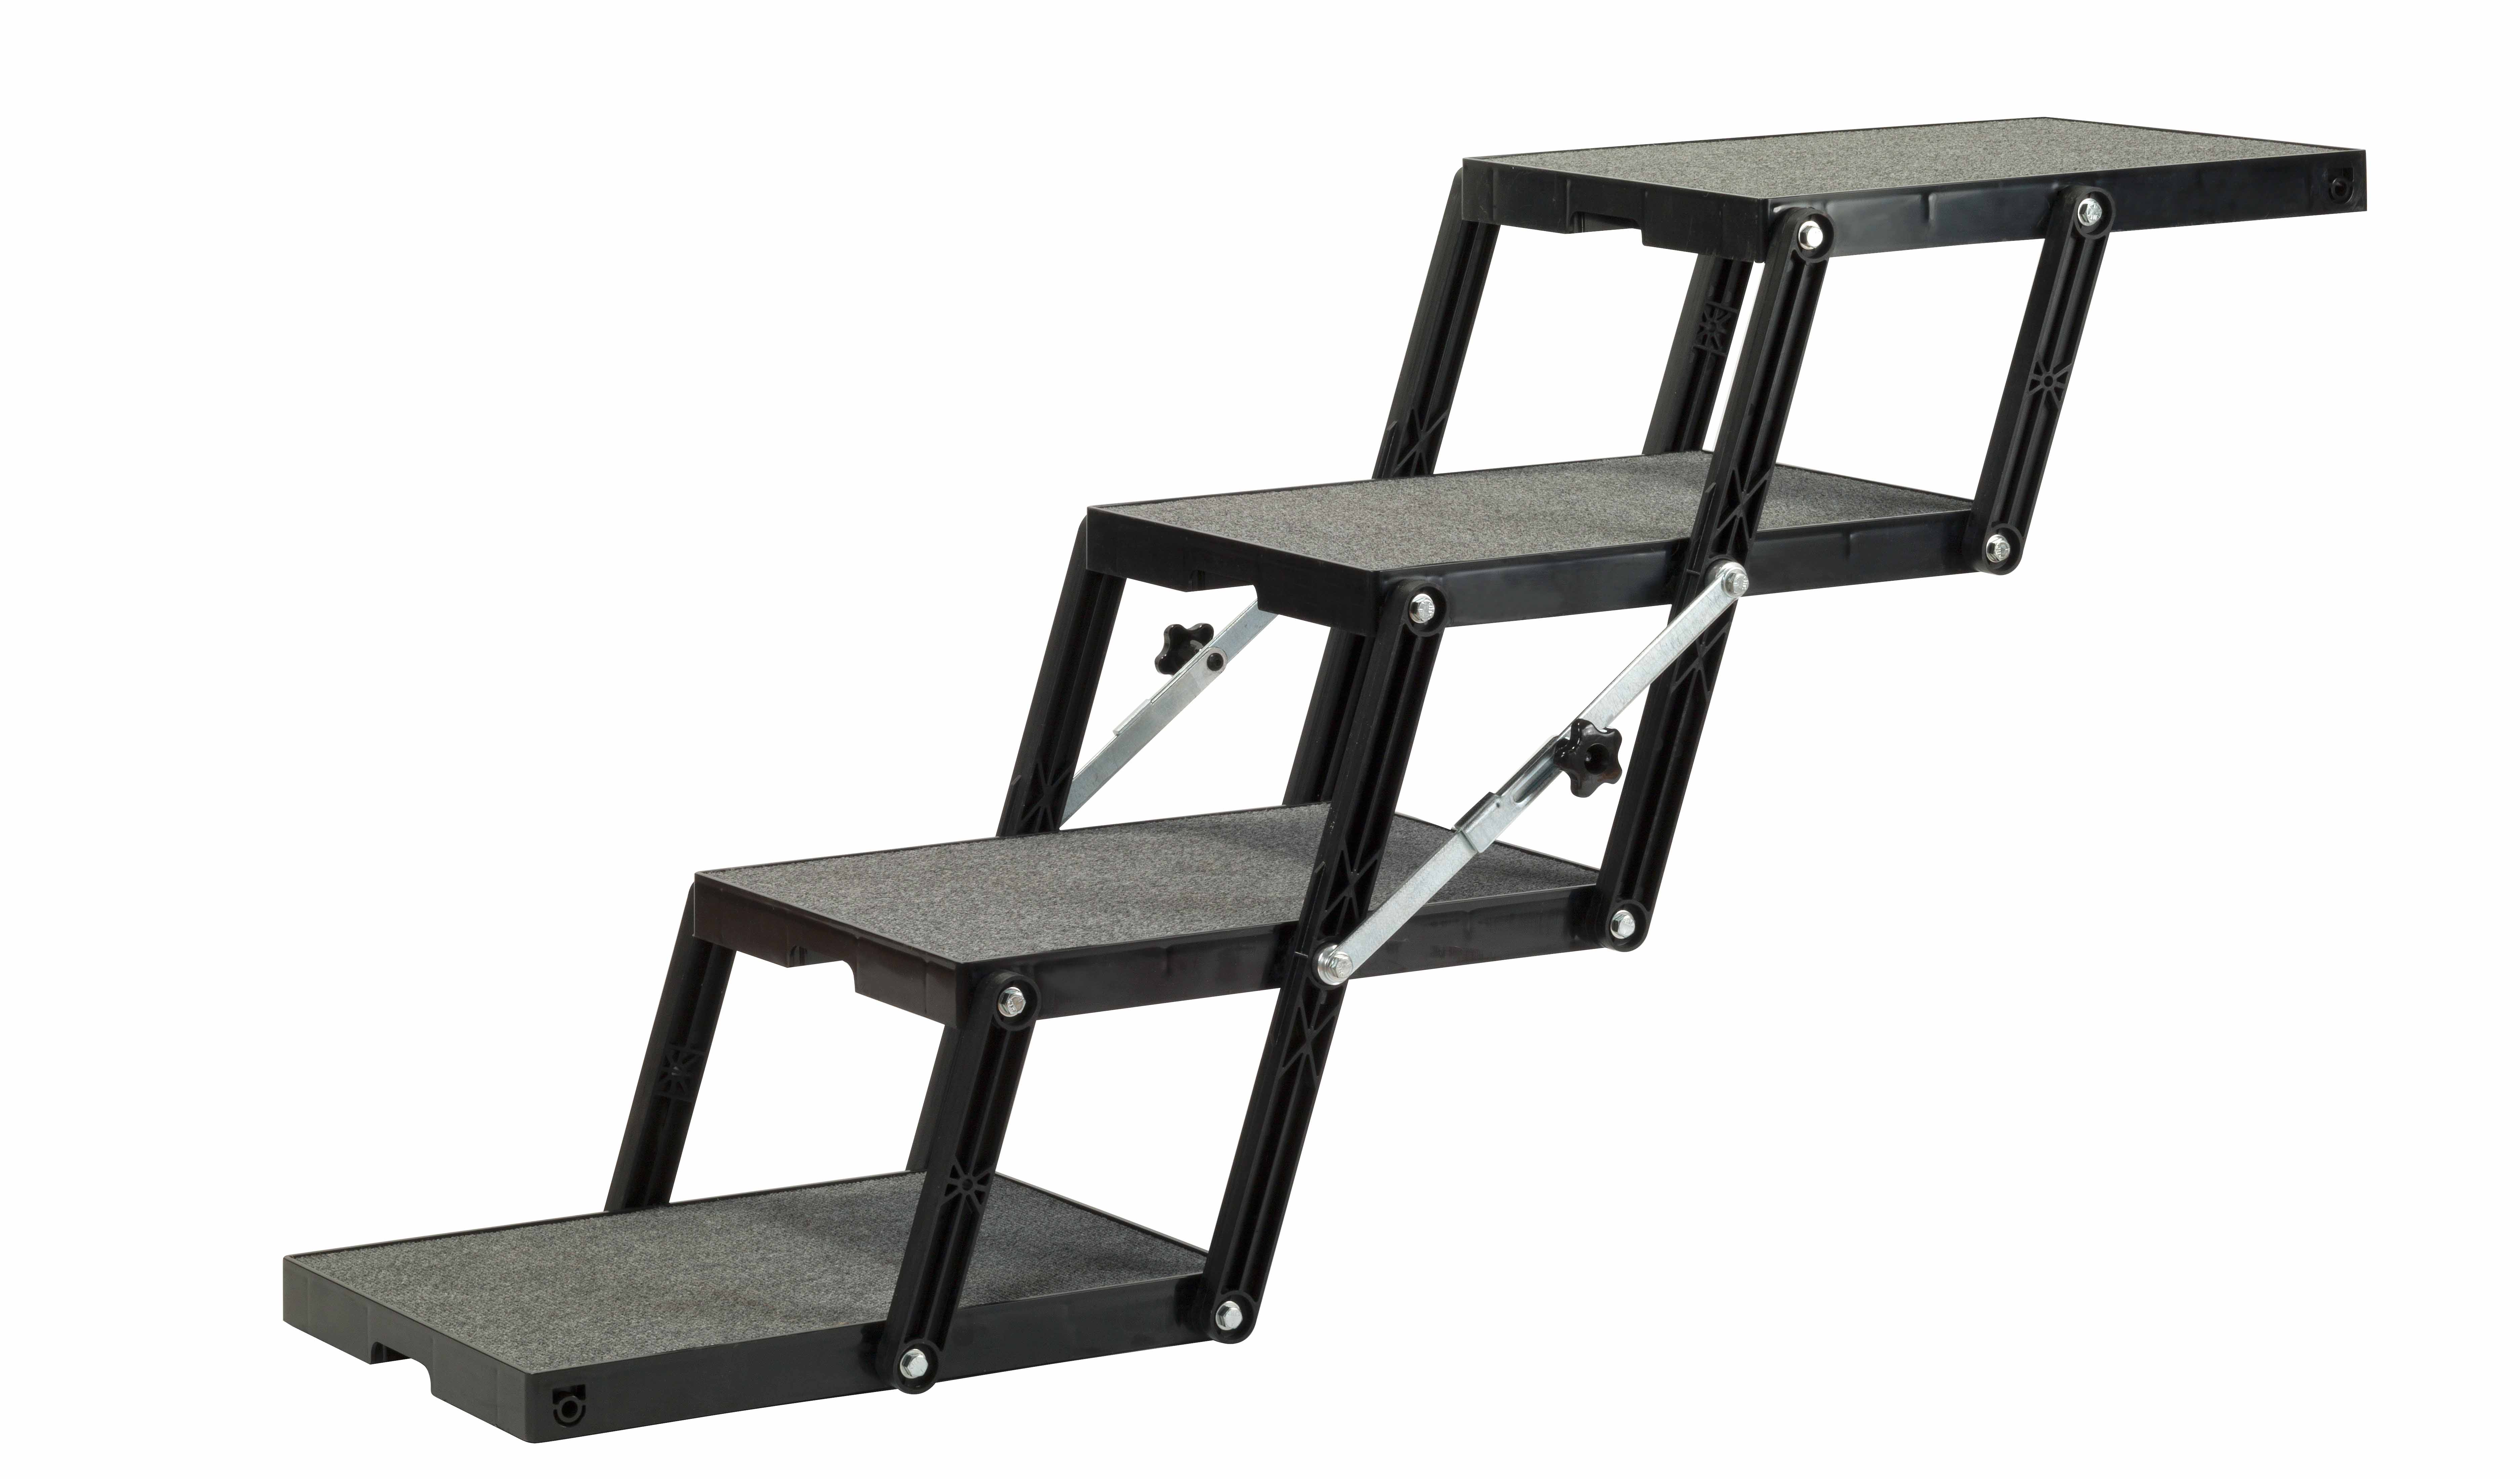 Dog Ramp for SUV - Steps Extended - Petloader-ABS XL 18 - 4 Step